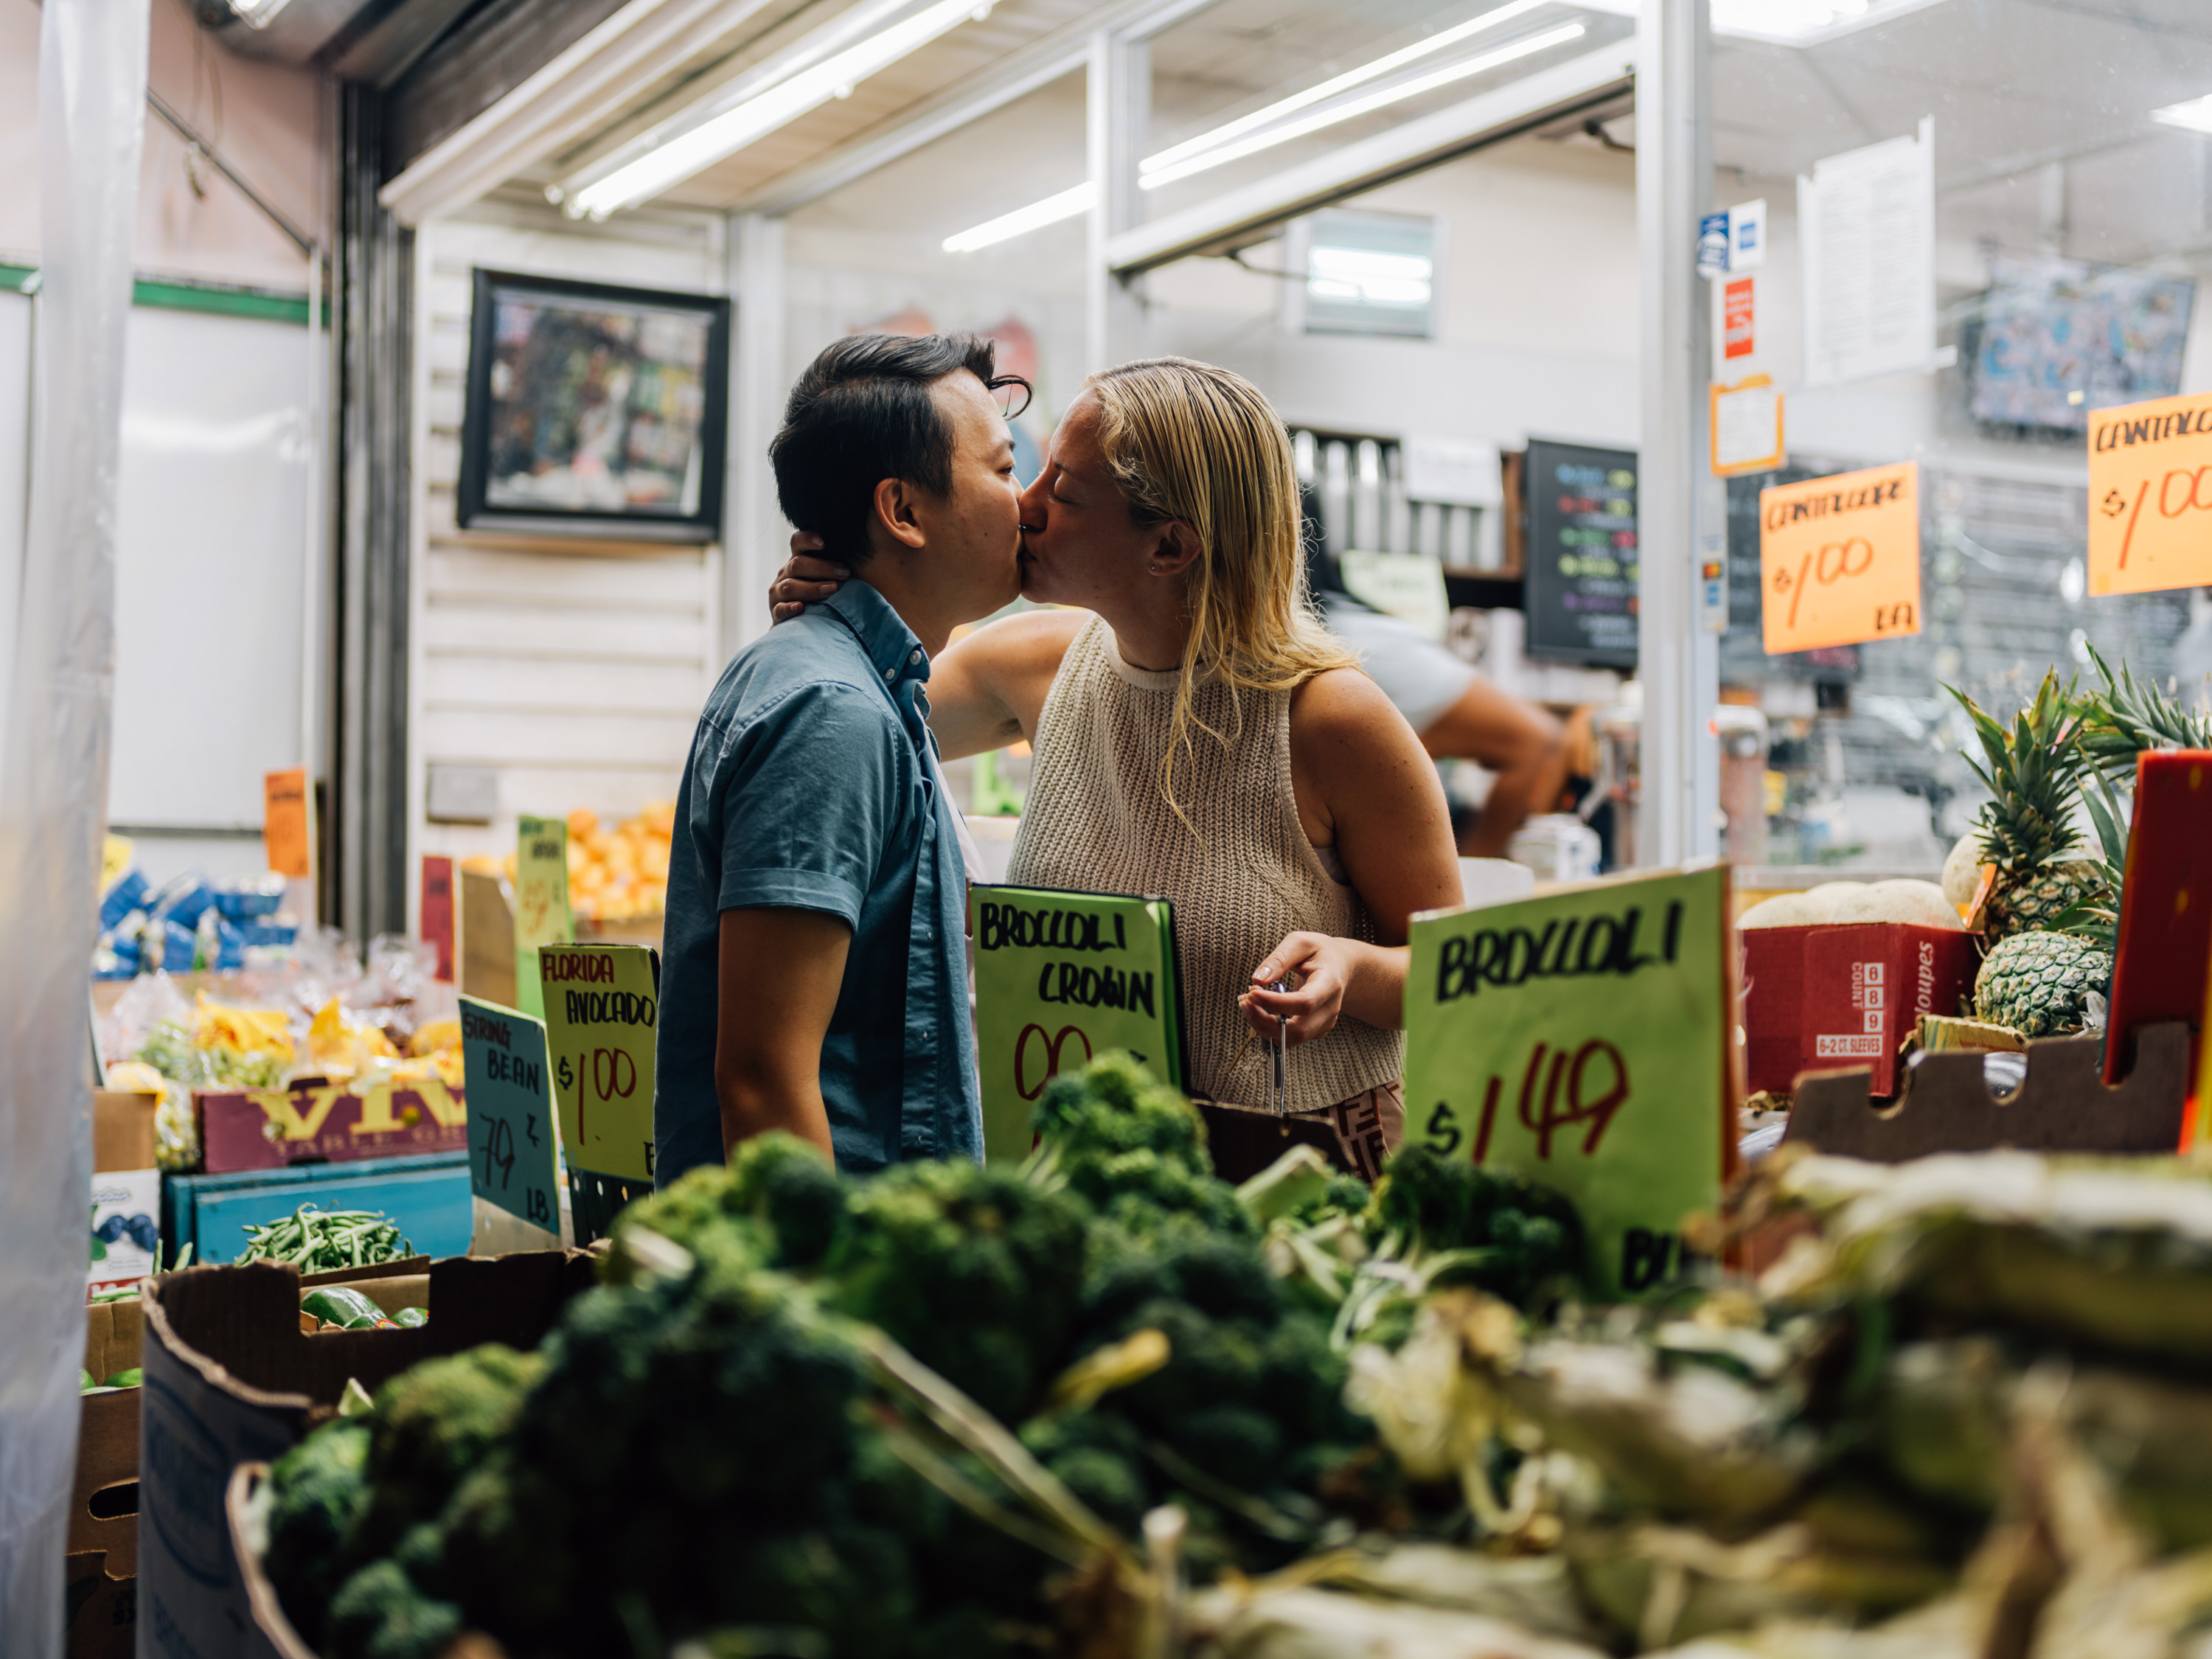 A woman leaning over and kissing the photographer outside a bodega